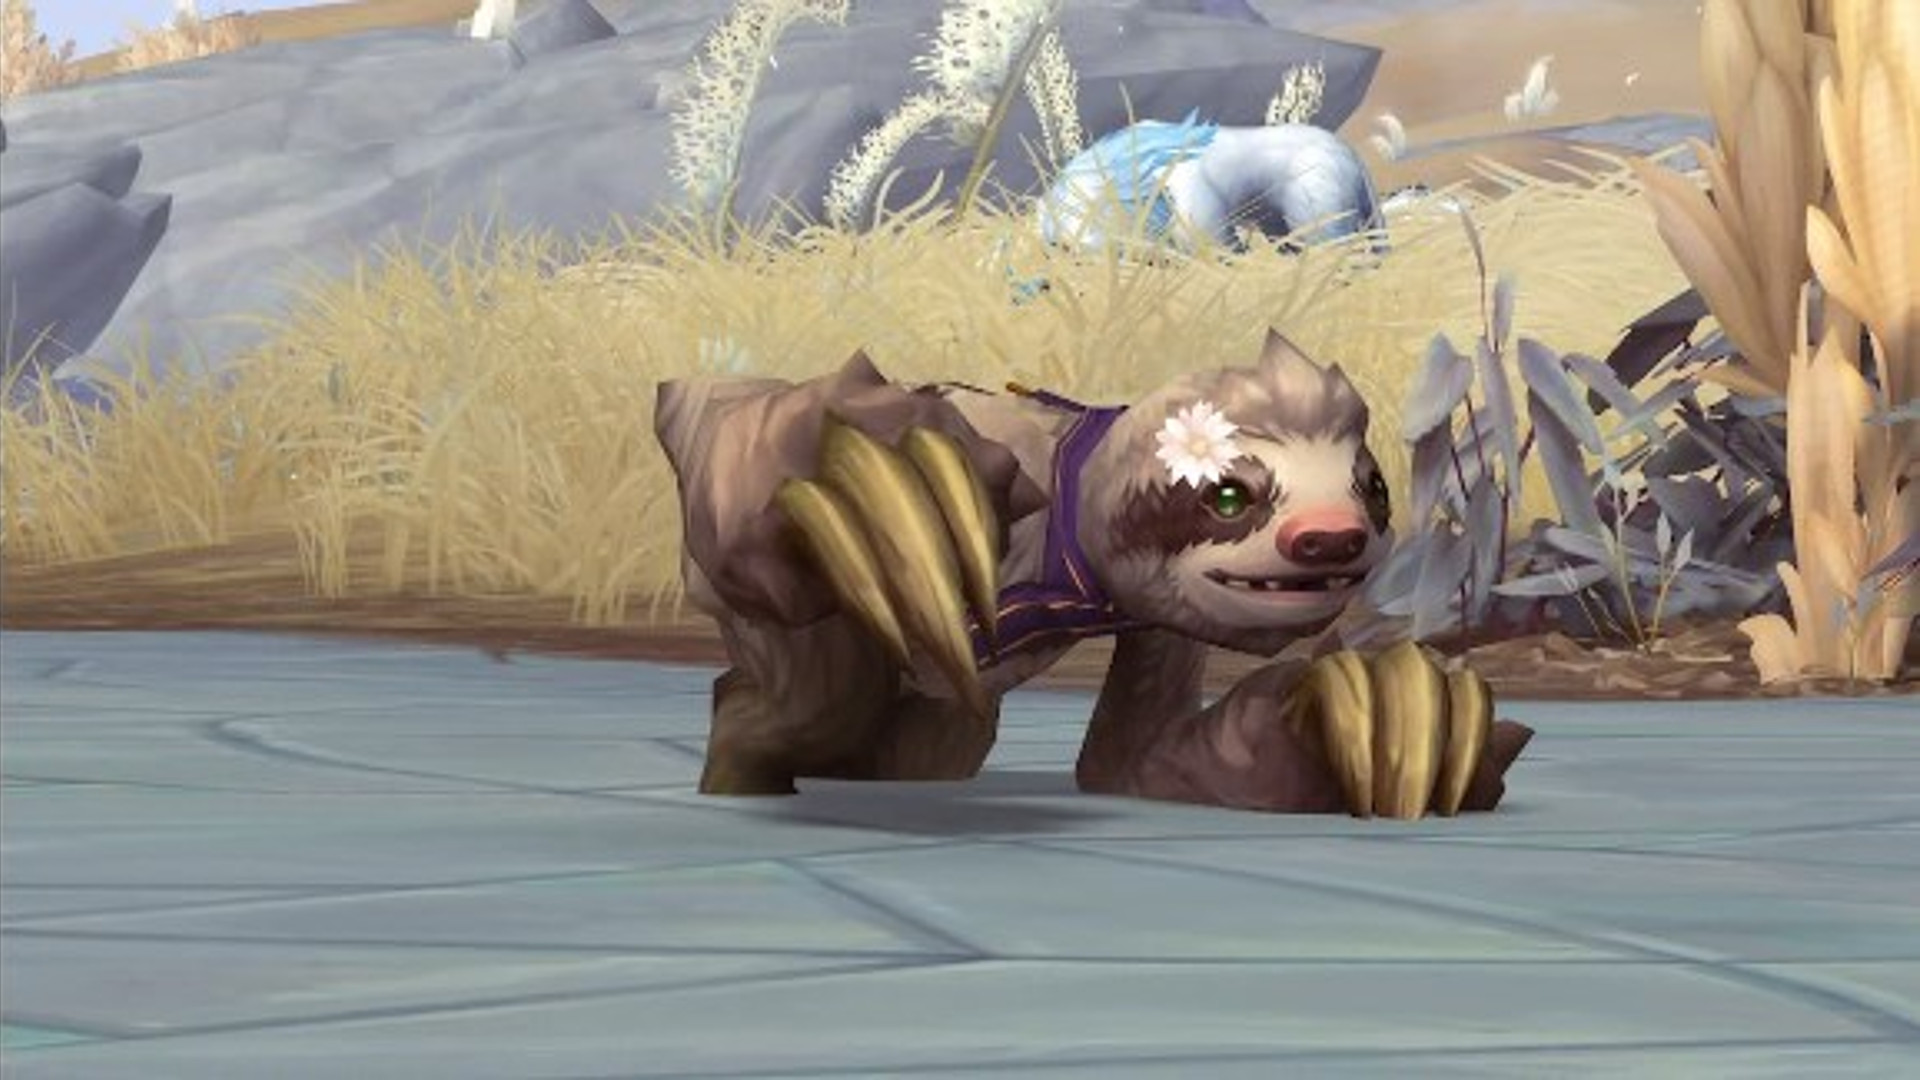 World of Warcraft offering cute pets for charity